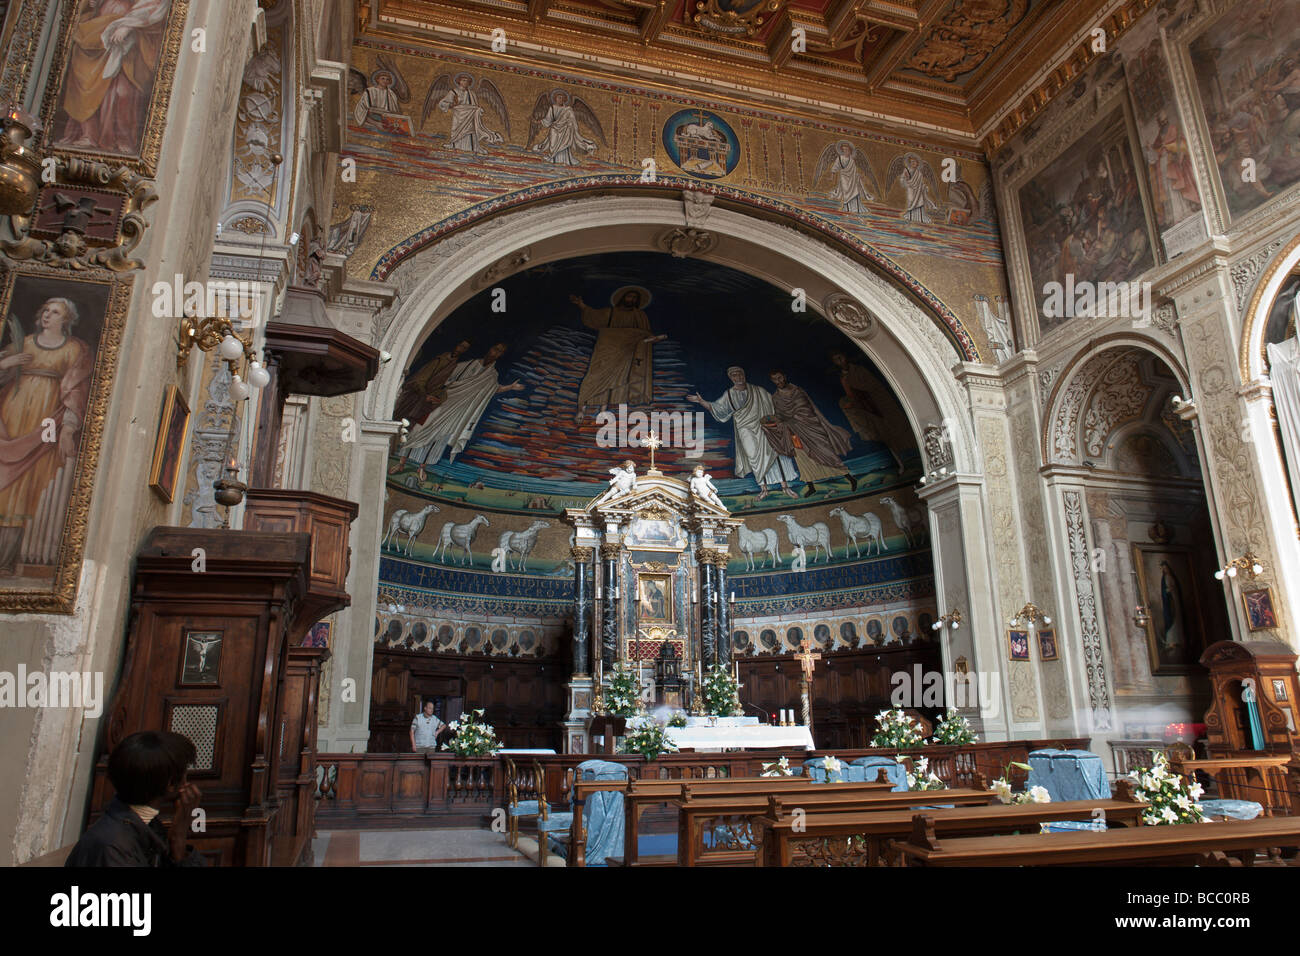 Mosaics on the apse and altar in the Basilica dei Santi Cosma e Damiano (Cosmas and Damian) - Stock Image